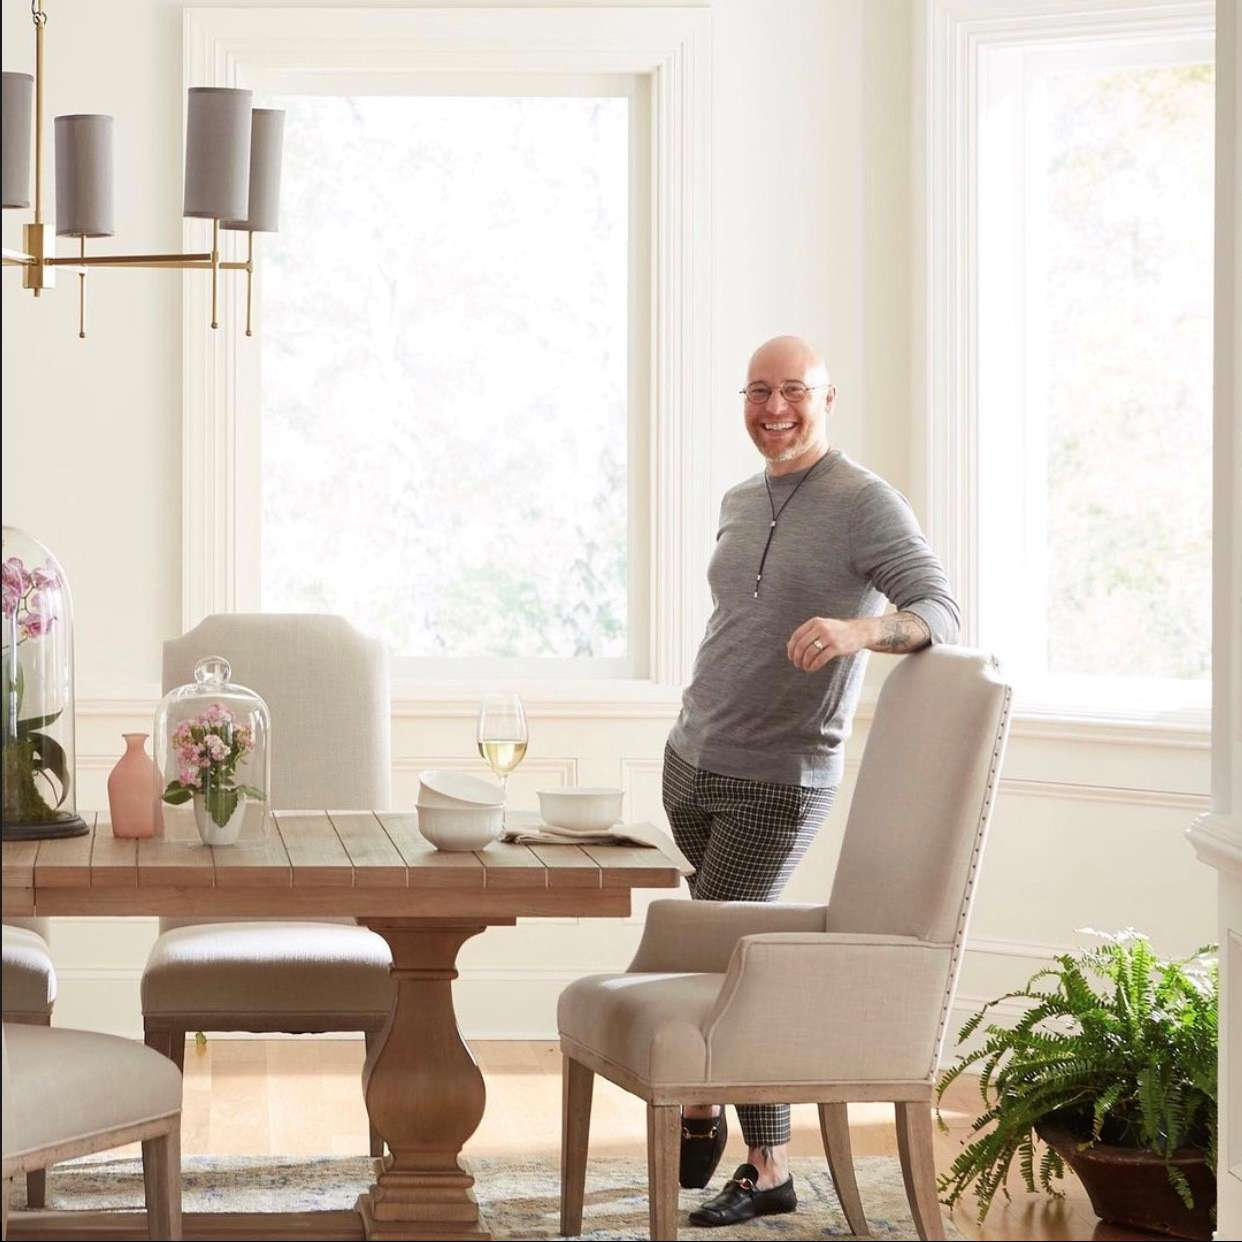 Roberson Keffer poses next to a dining table